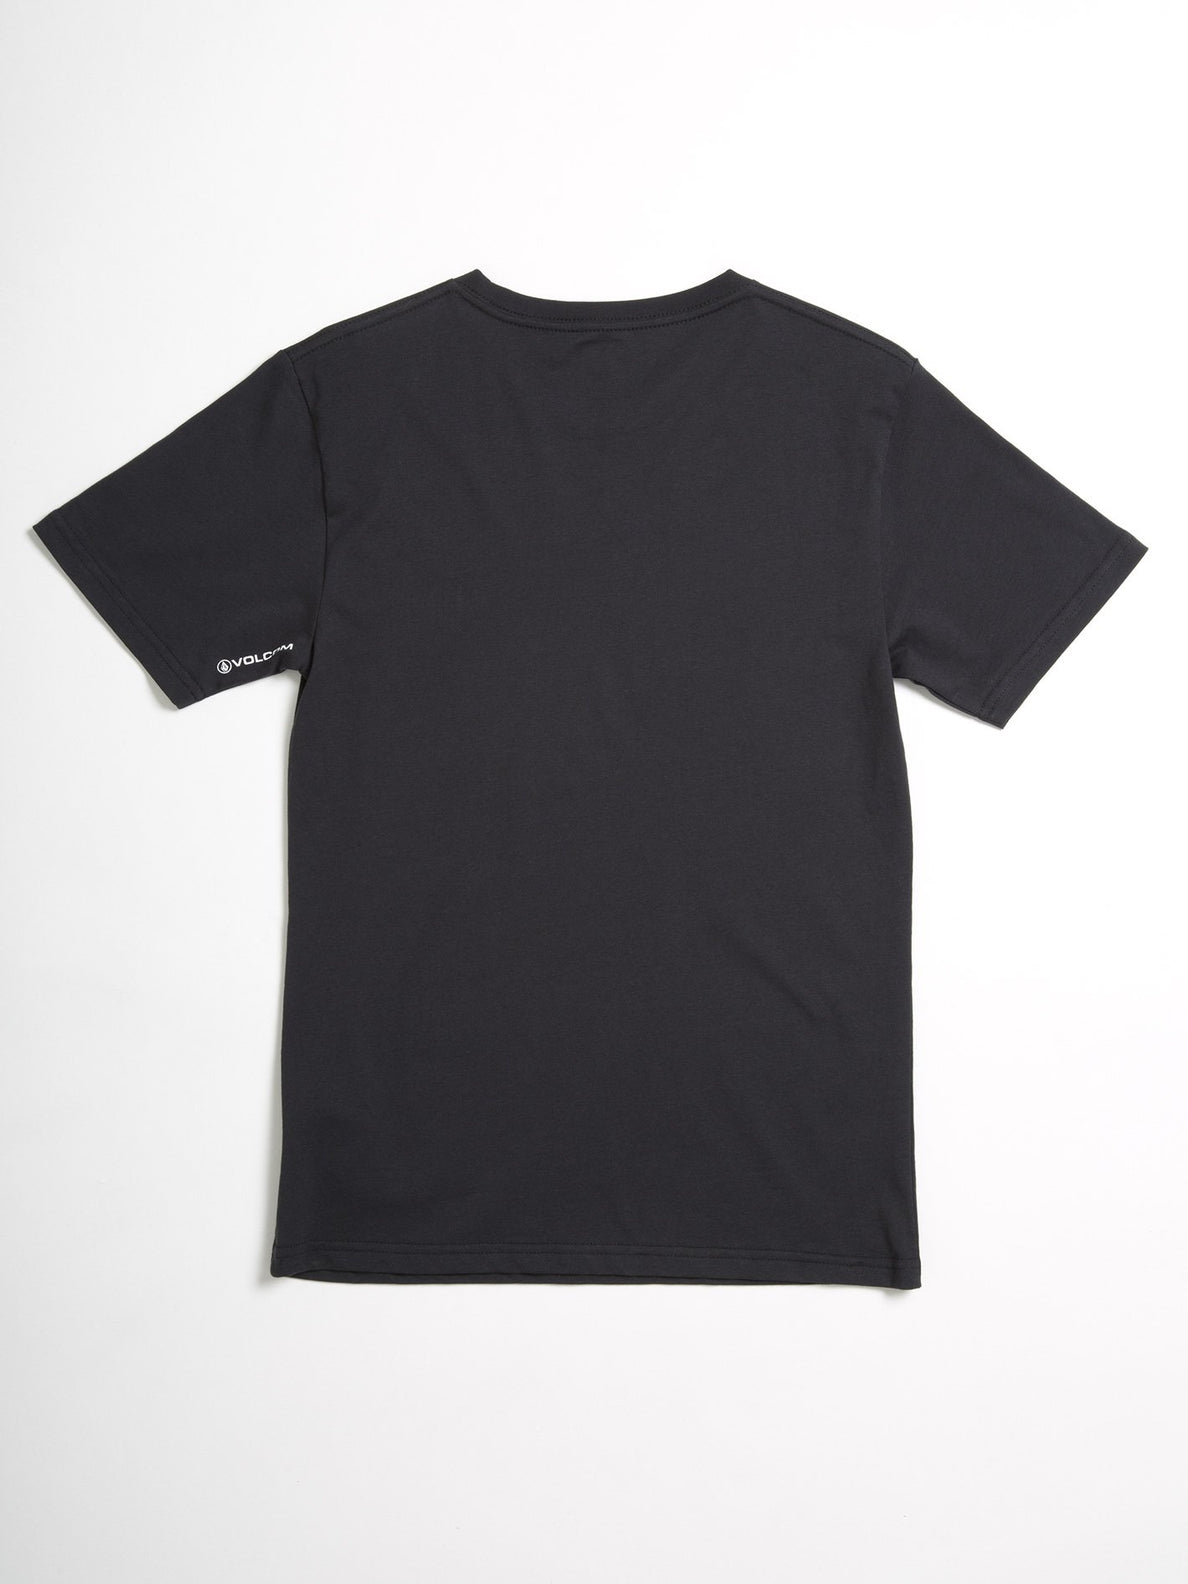 Volcom Panic T-Shirt - Black (Kinder)